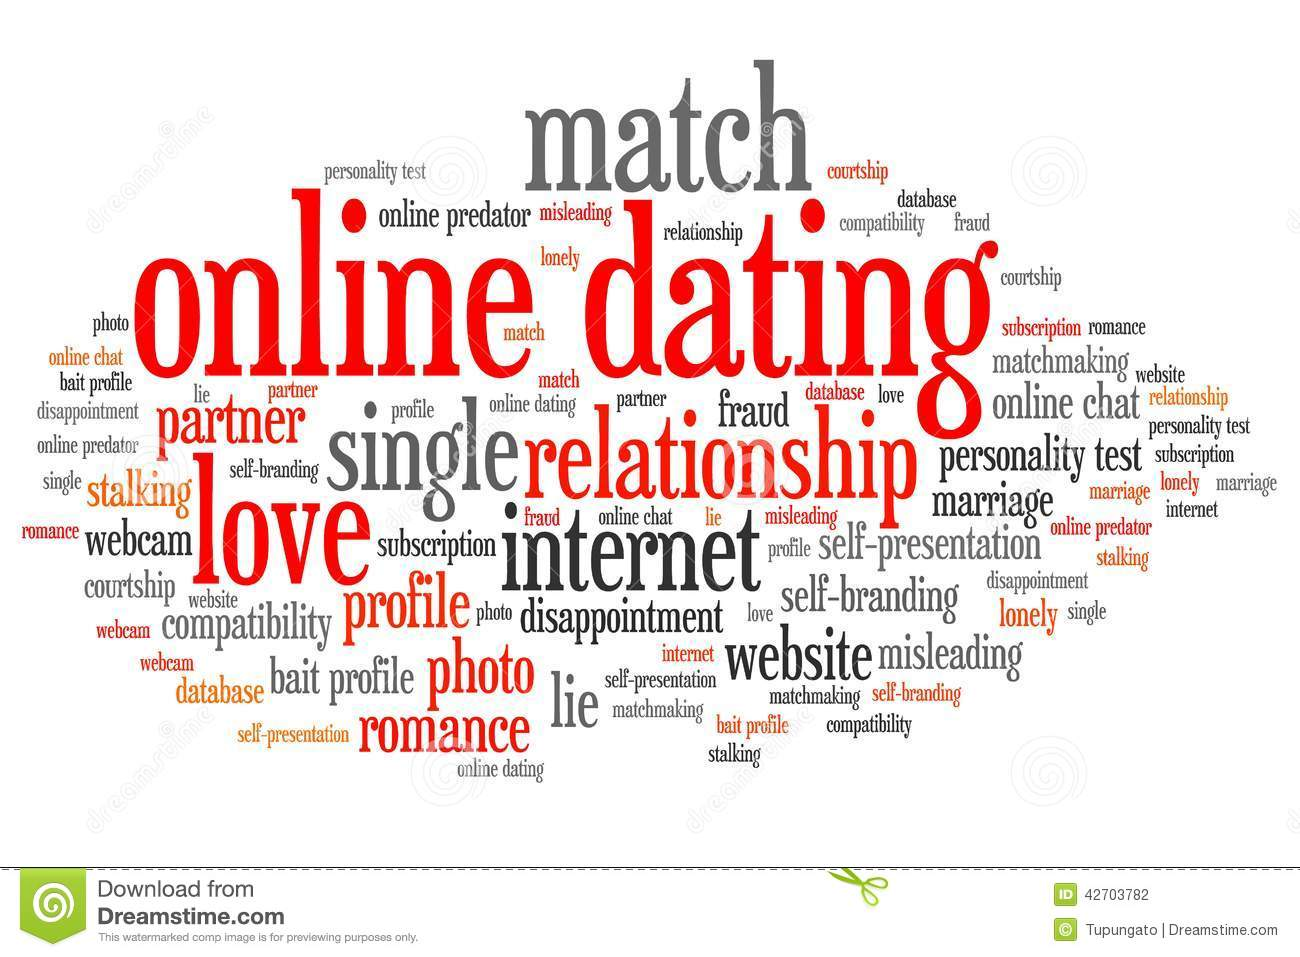 waco online hookup & dating Sparkcom makes online dating easy and fun it's free to search, flirt, read and respond to all emails we offer lots of fun tools to help you find and communicate with singles in your area.